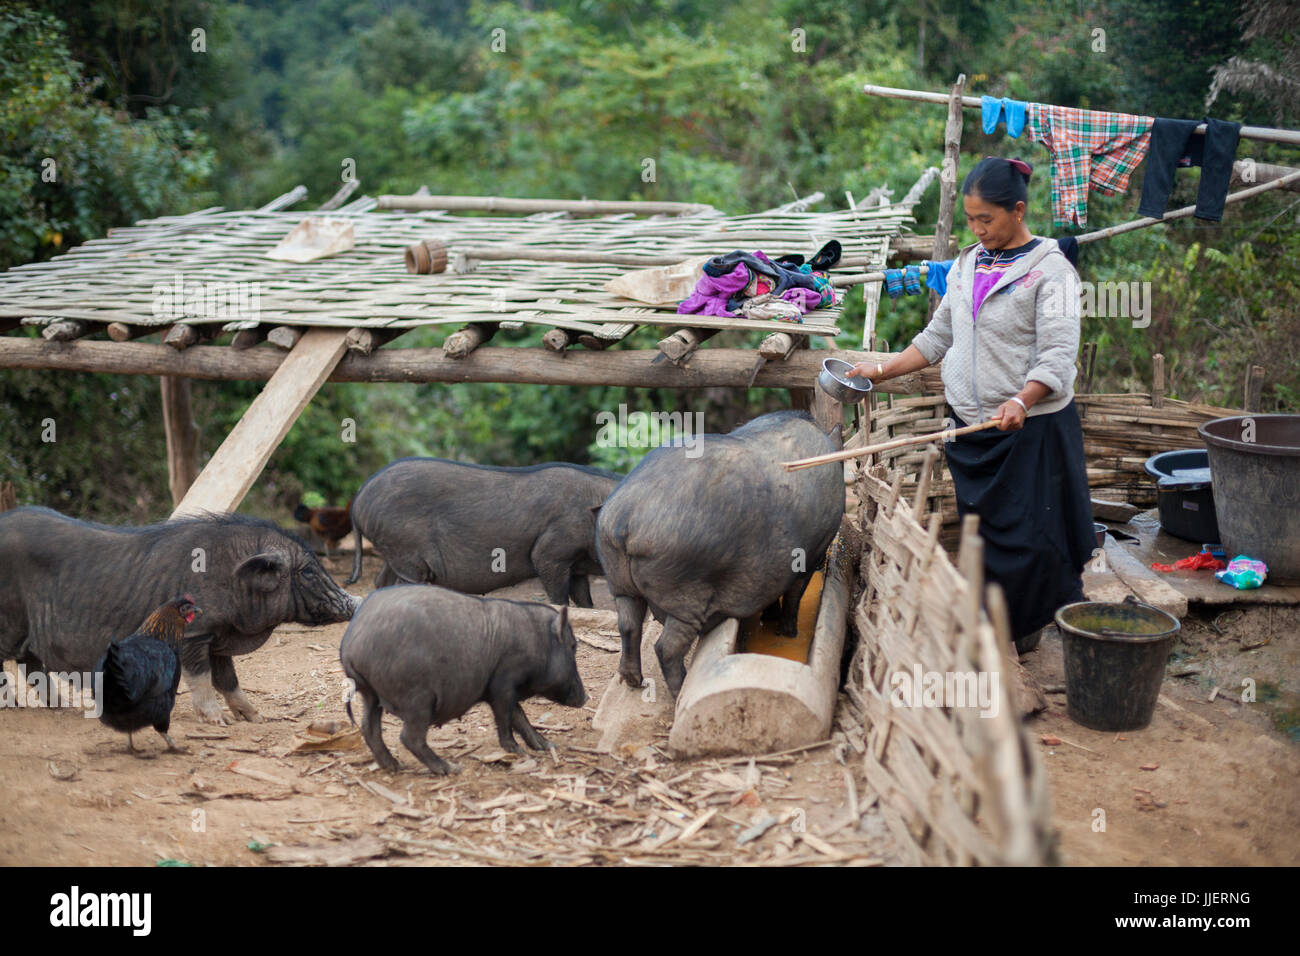 A woman feeds food scraps to her pigs outside her home in Ban Sop Kha, Laos. - Stock Image